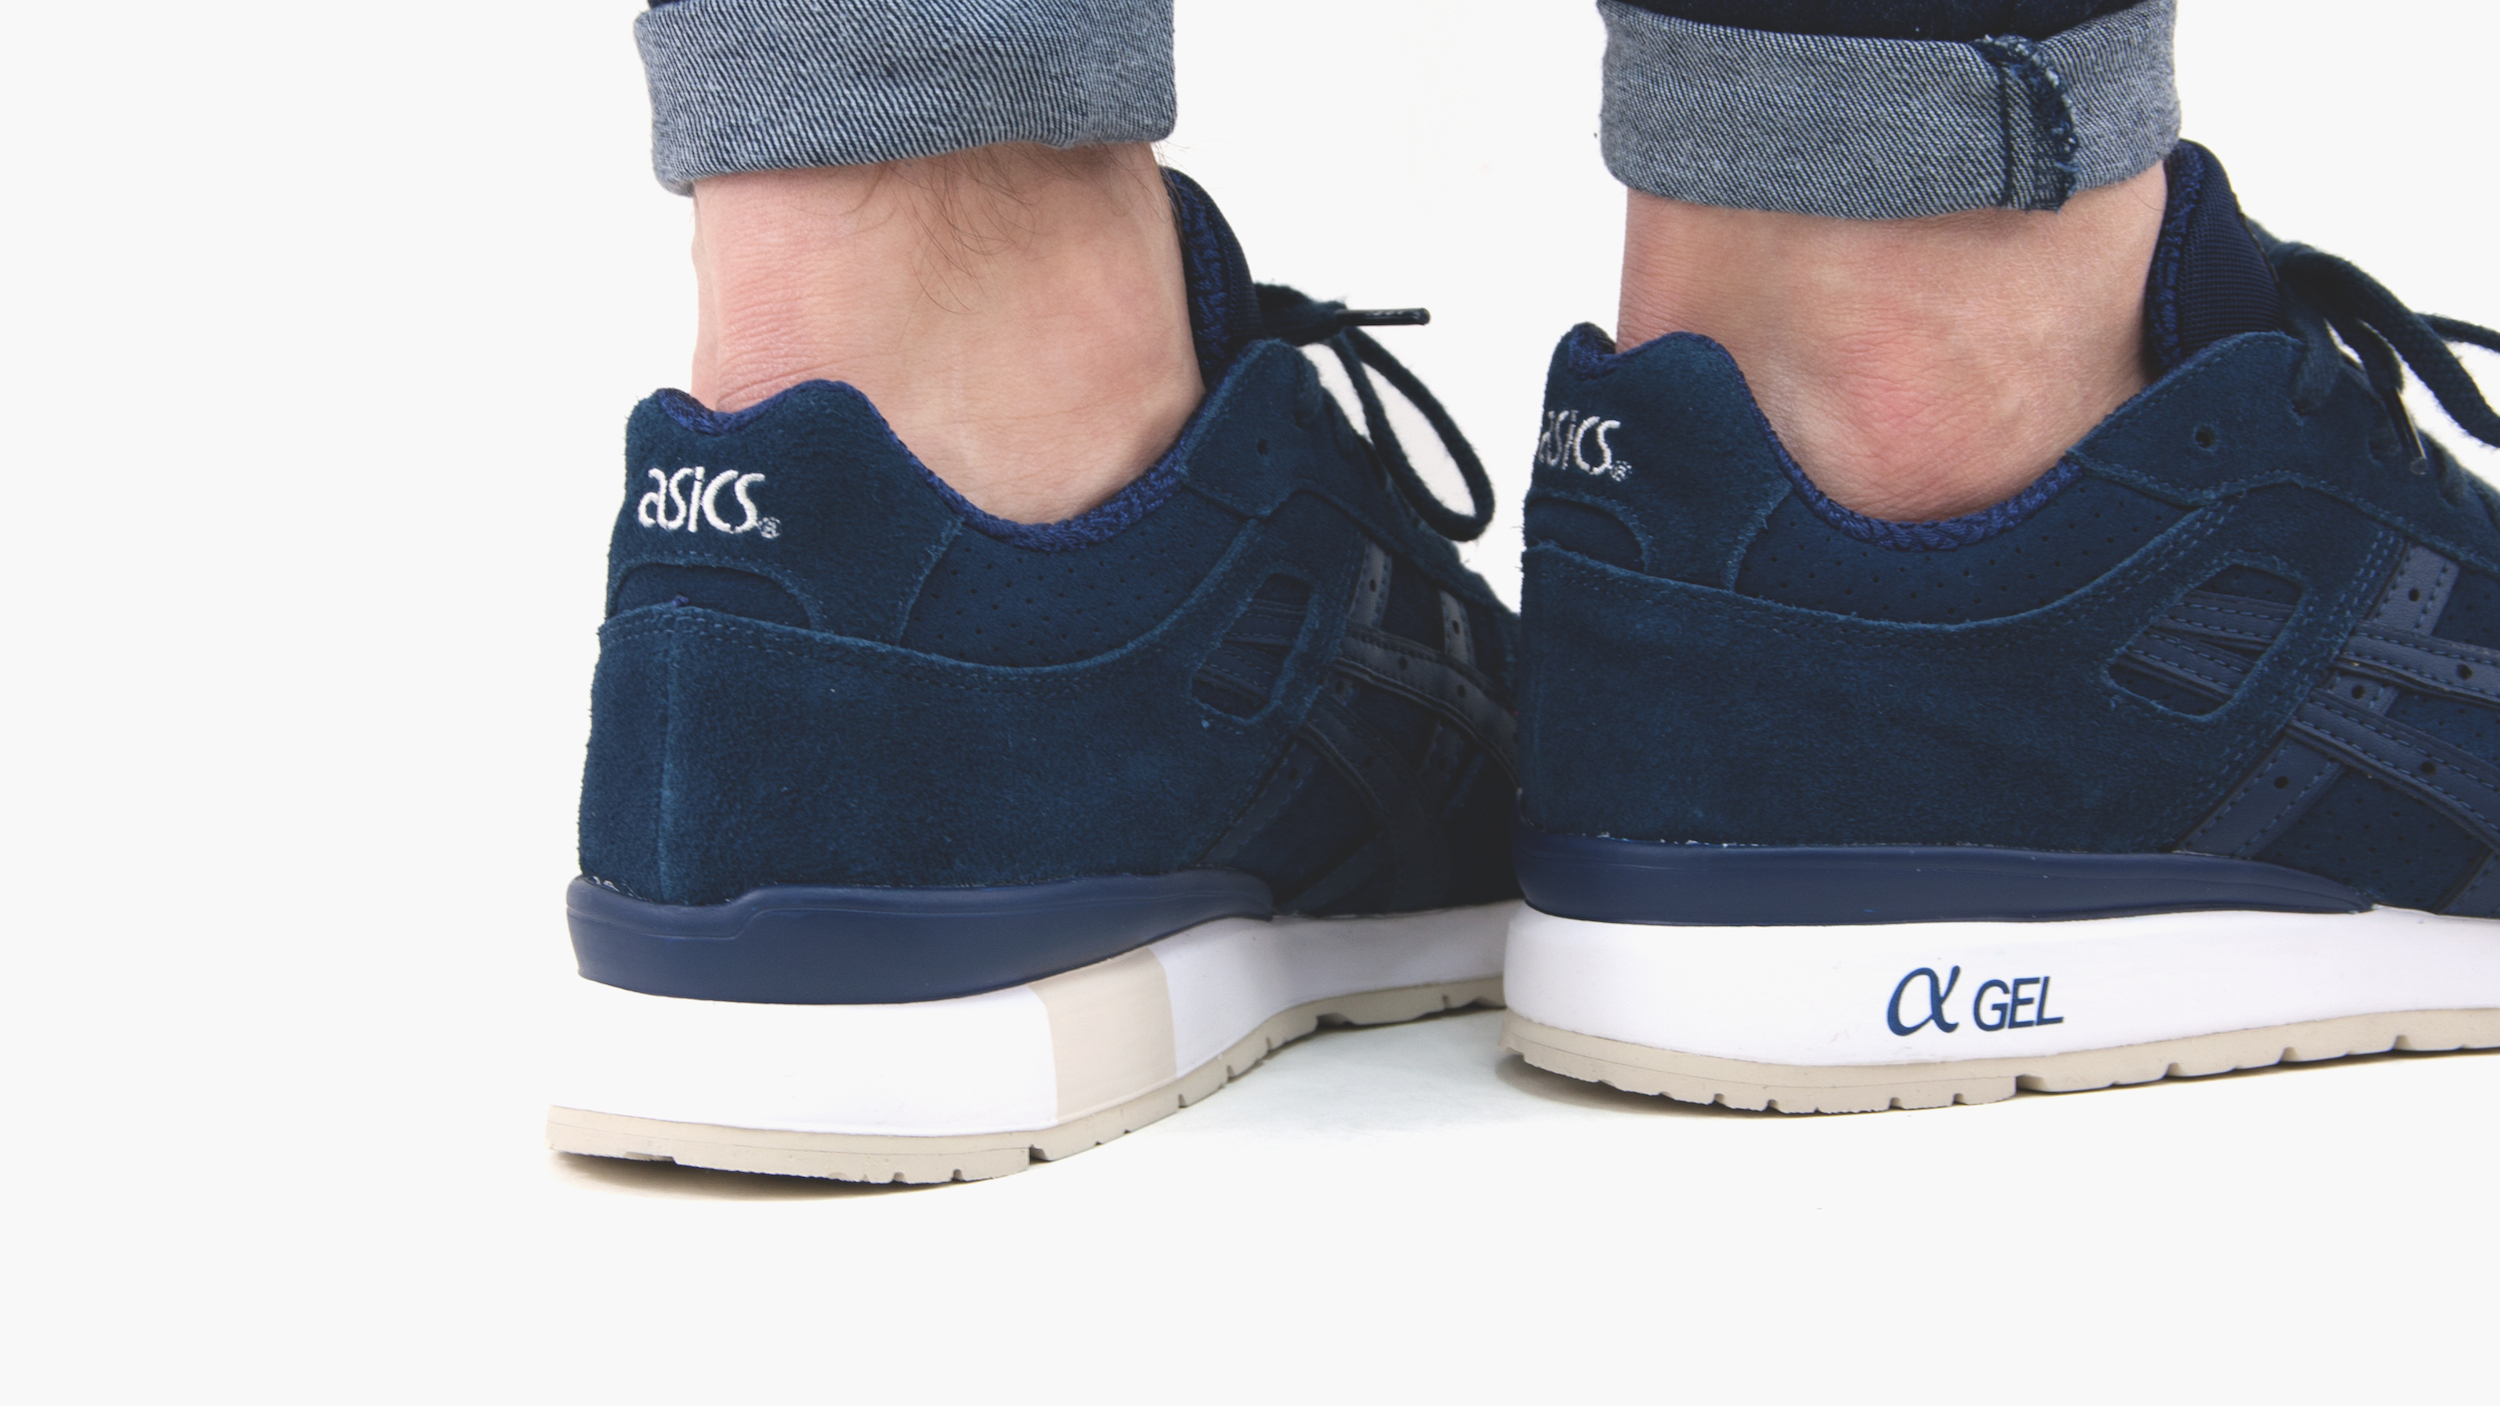 asics-gt-ii-suede-pack-MATE-Promo-1